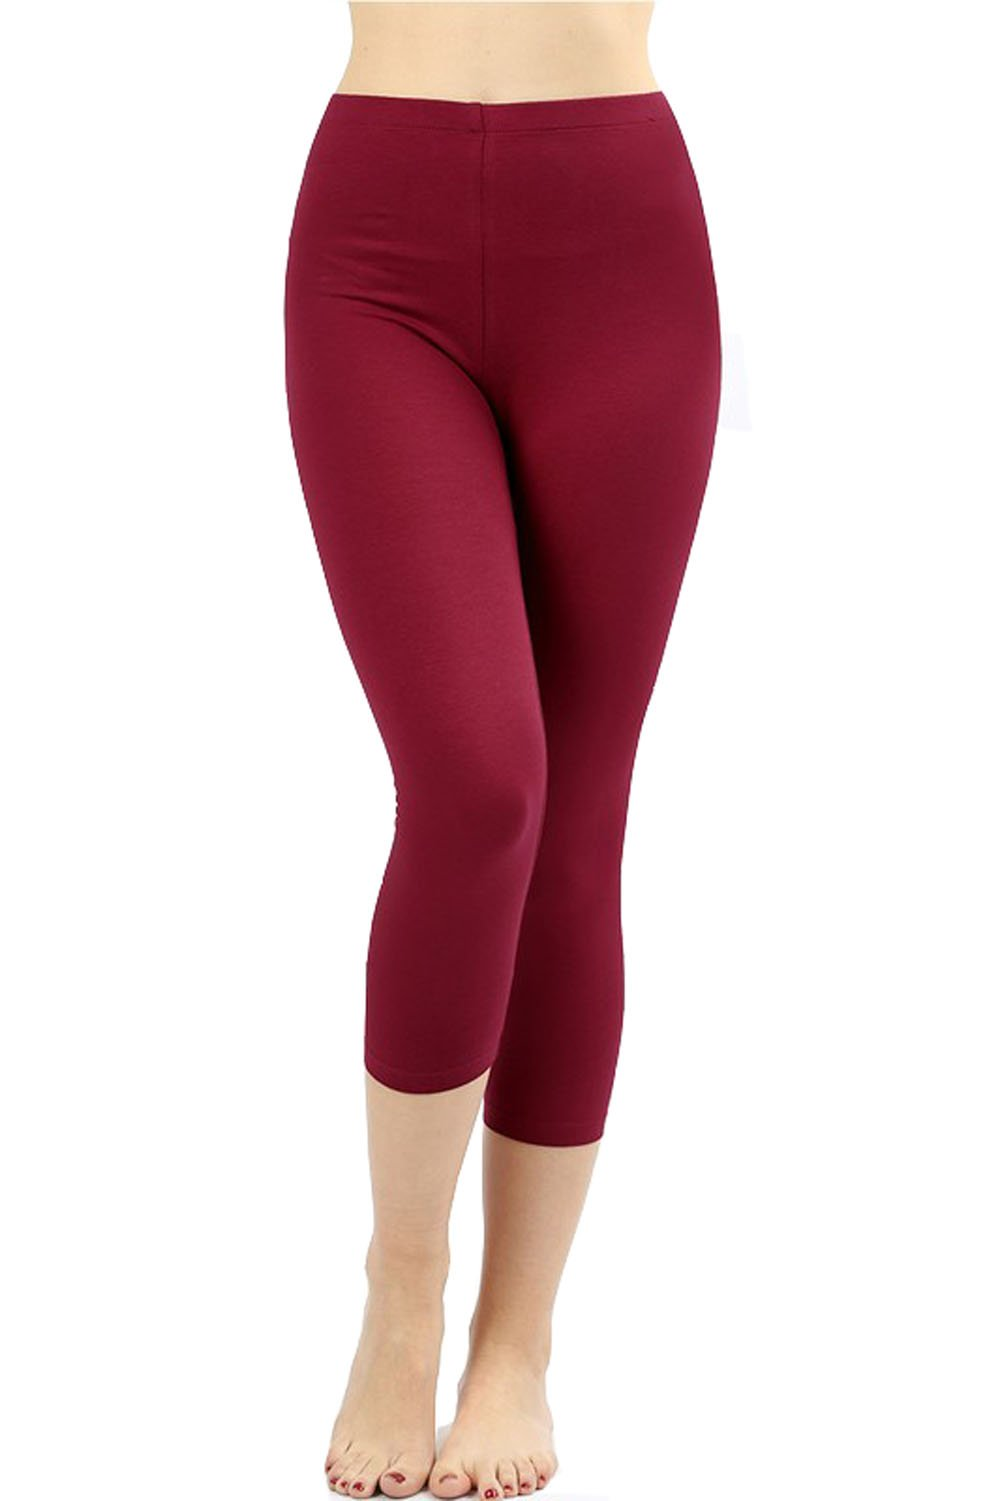 UNU Style Premium Ultra Soft Cotton 15 inch Capri & Regular Capri Leggings (R-Cabernet, Medium)